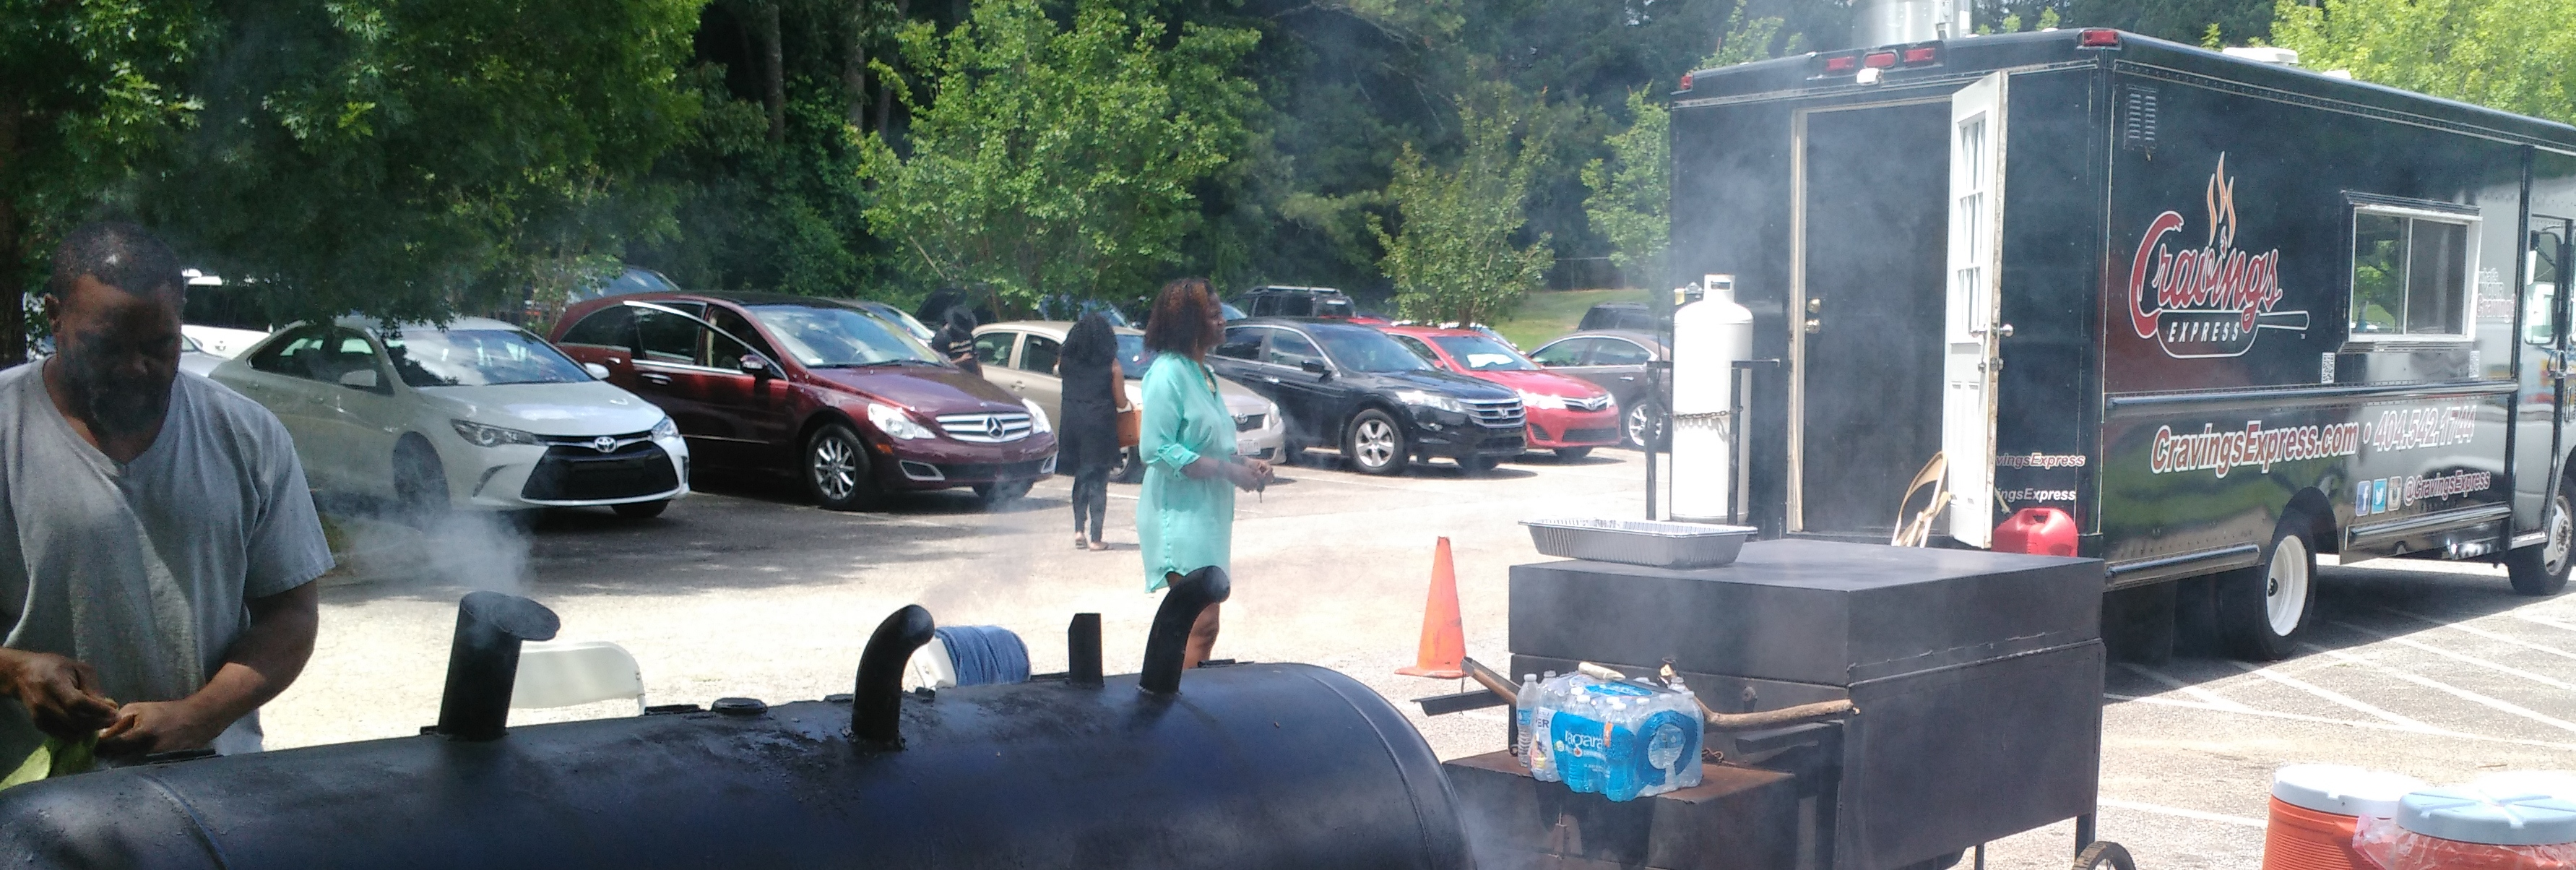 PayUsa Cracker Barrel Fathers Day Cookout (9)